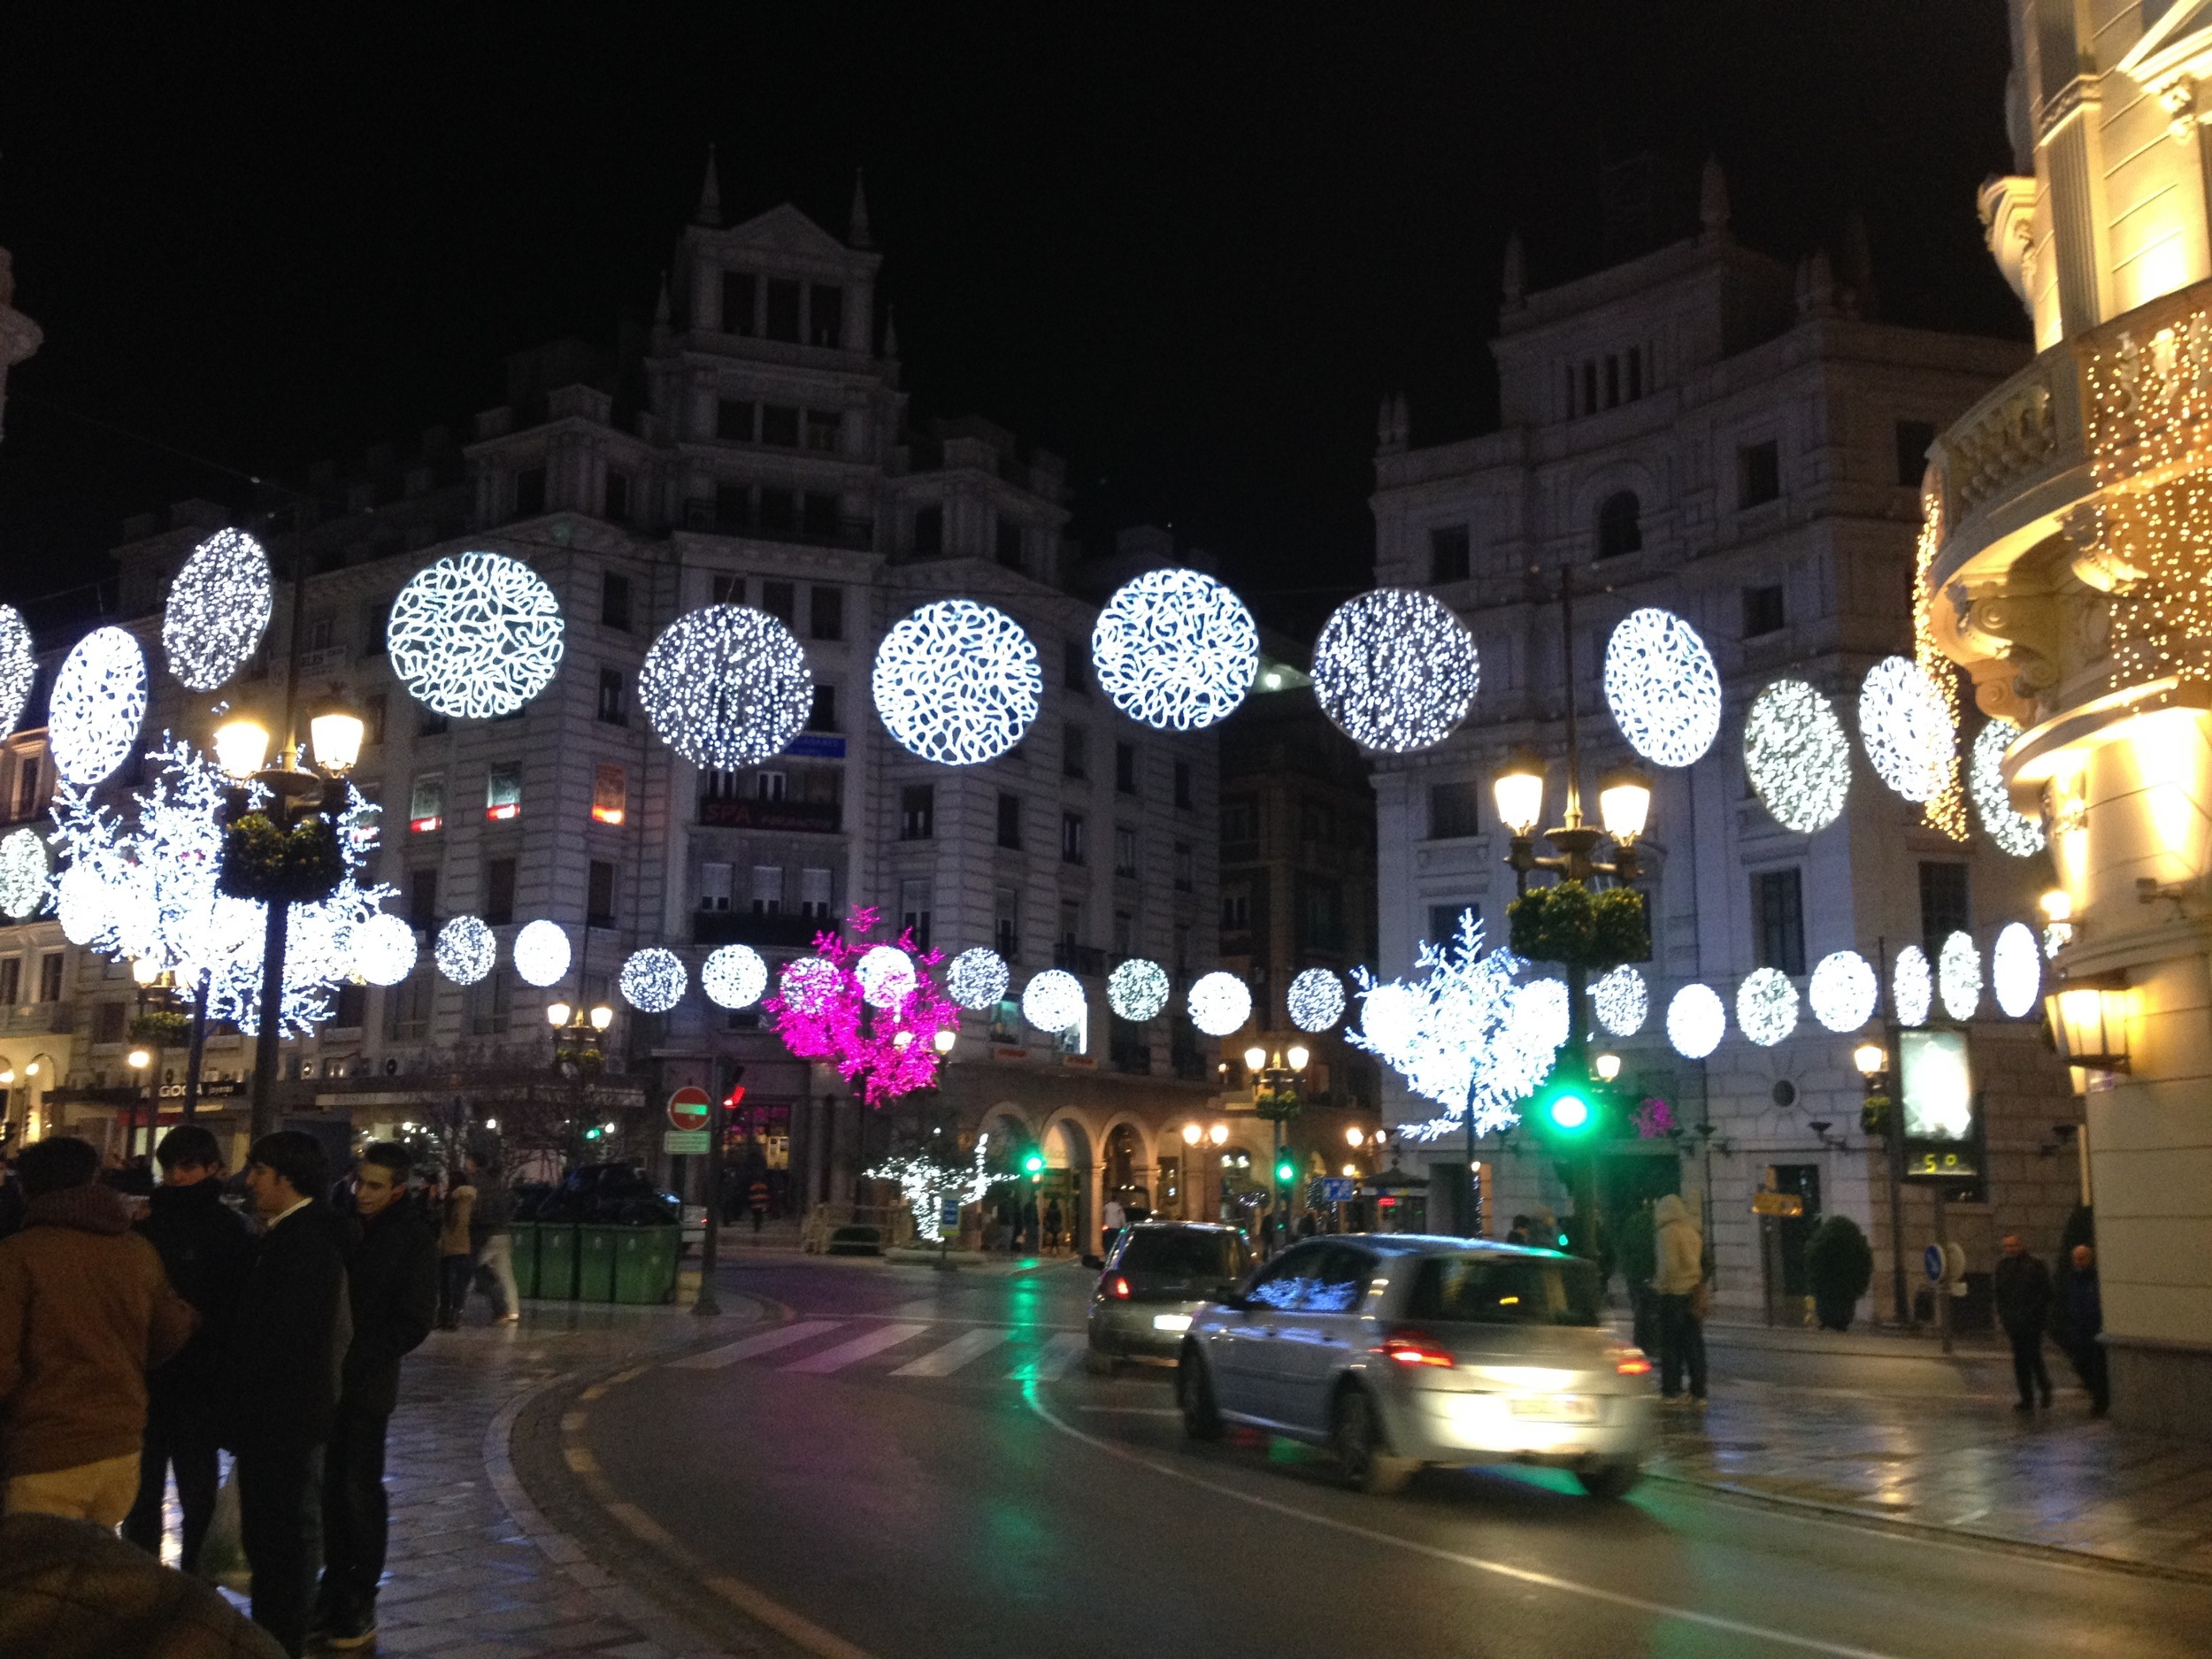 The center of the city, right where  Calle Recogidas  and  C  alle Reyes Católicos  meet, all dolled up with lights for  La   Navidad .